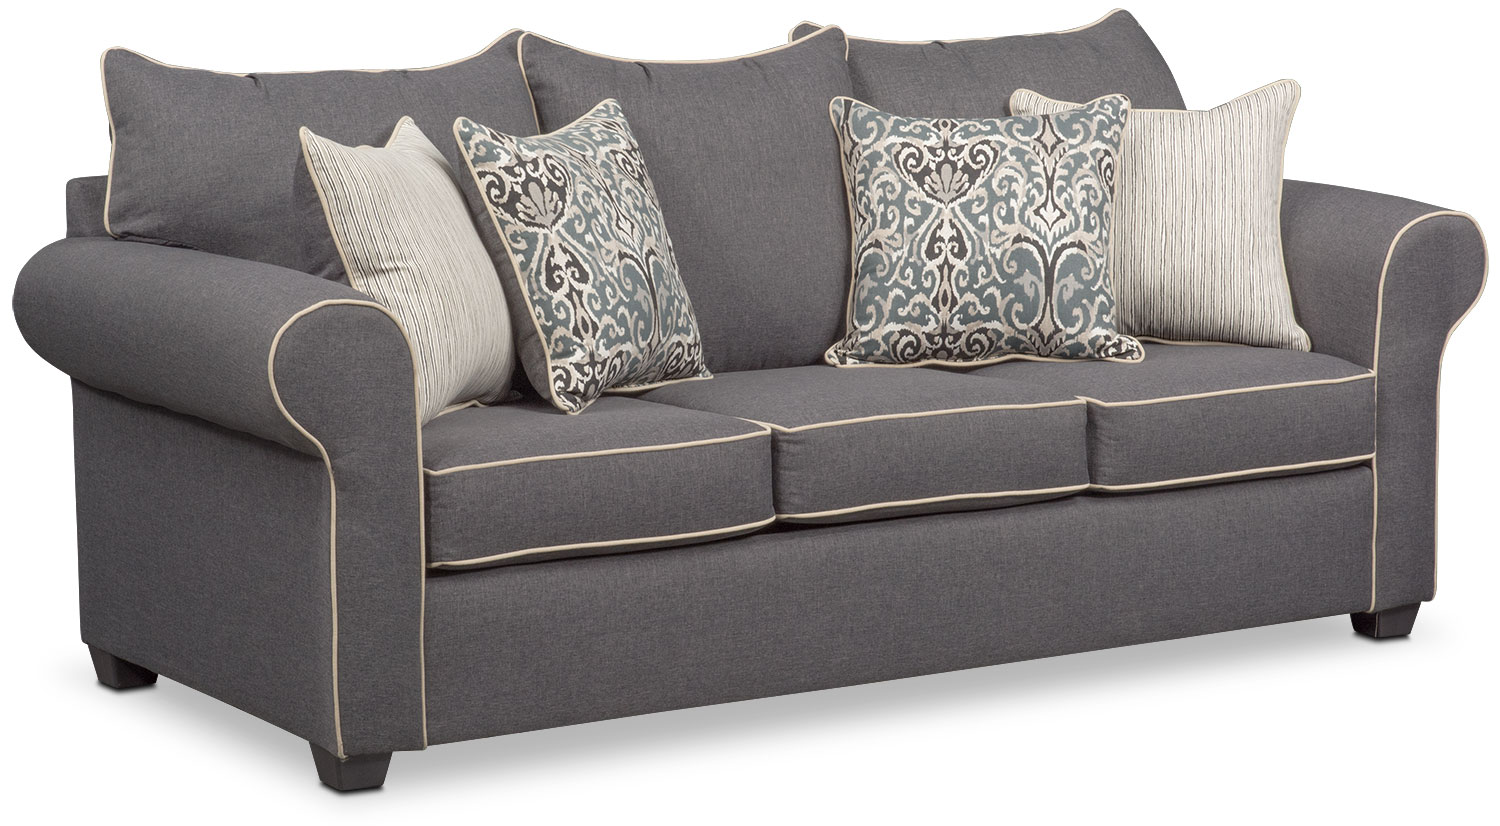 couch and chair set collapsible rocking carla sofa loveseat accent gray value